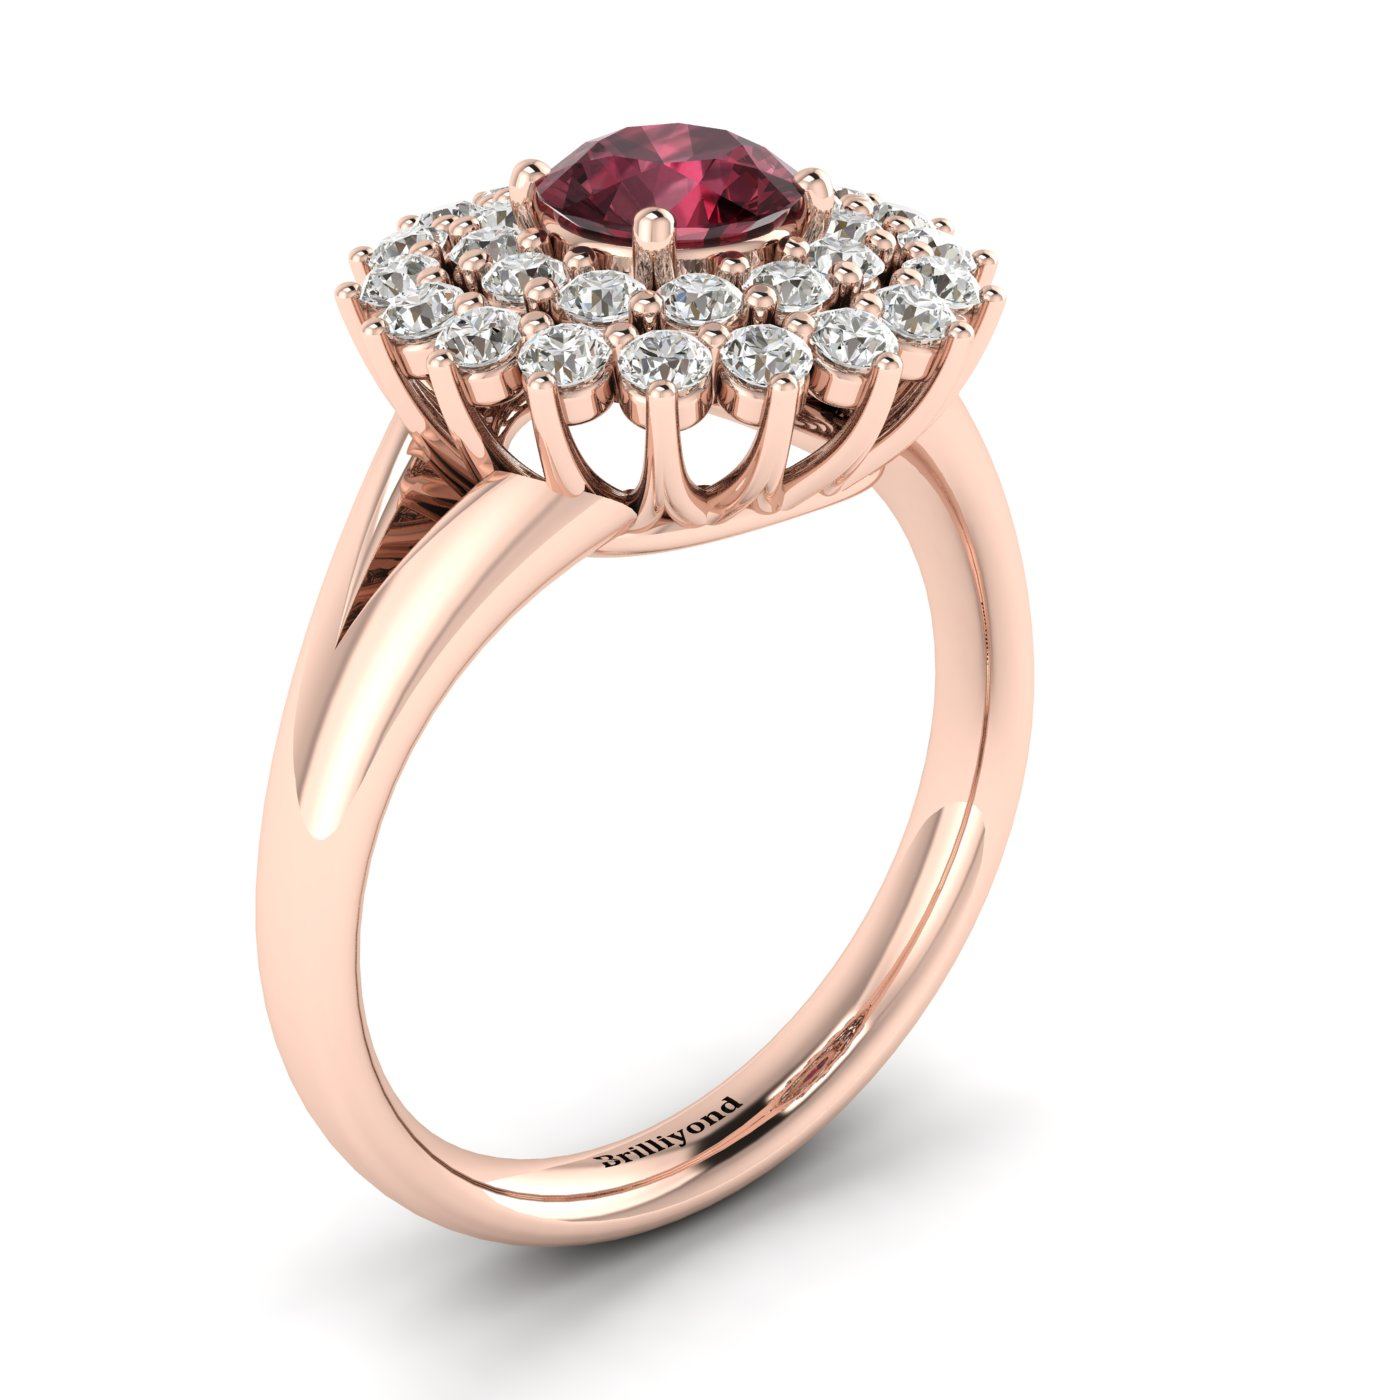 l rhodolite occasion strawberry ernest engagement jones diamond category ring brand gold jewellery number rings garnet webstore le vian product